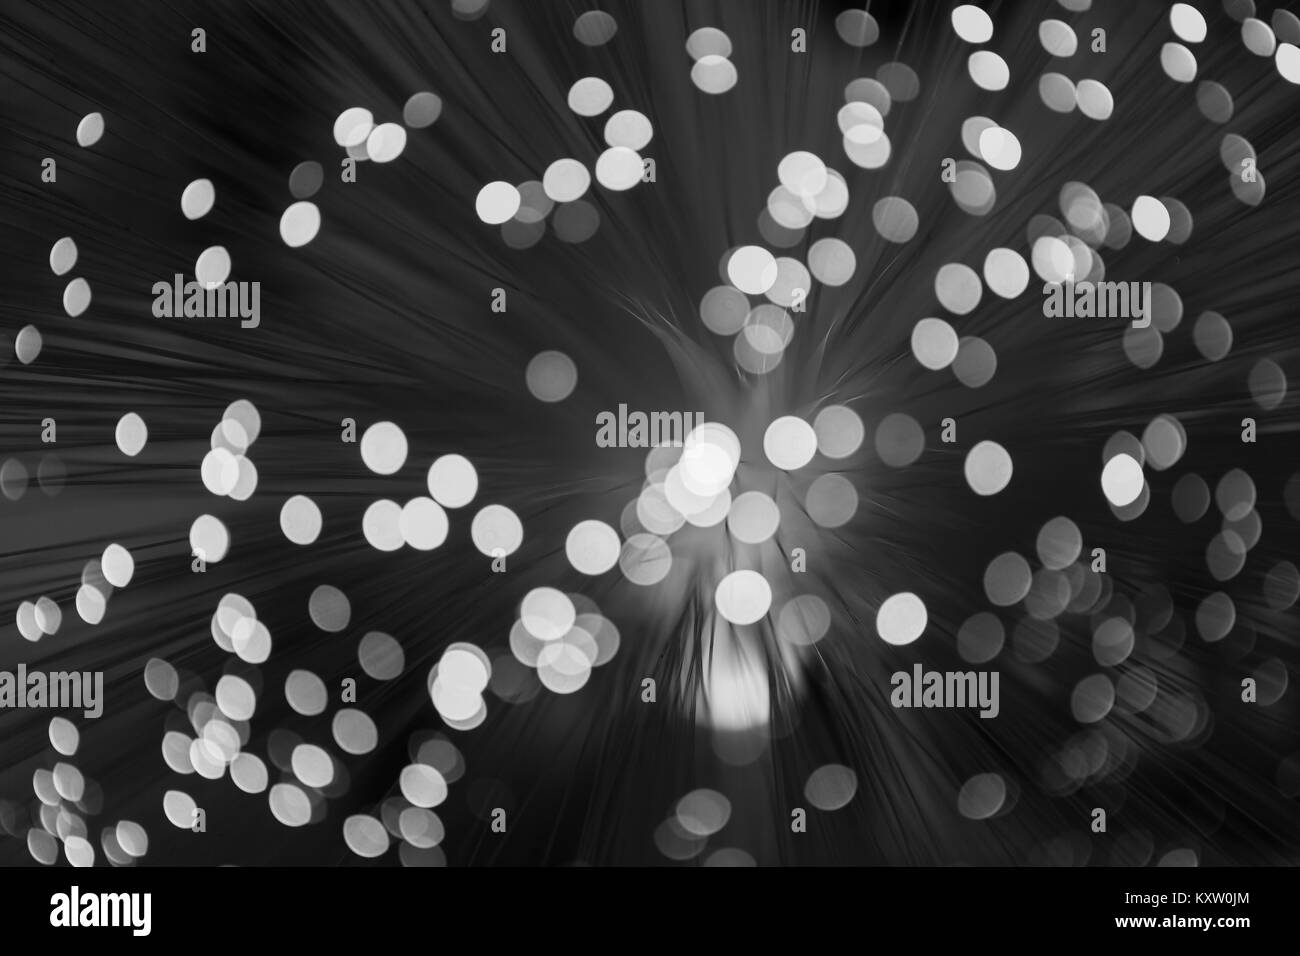 Abstract lights blurred background - Stock Image